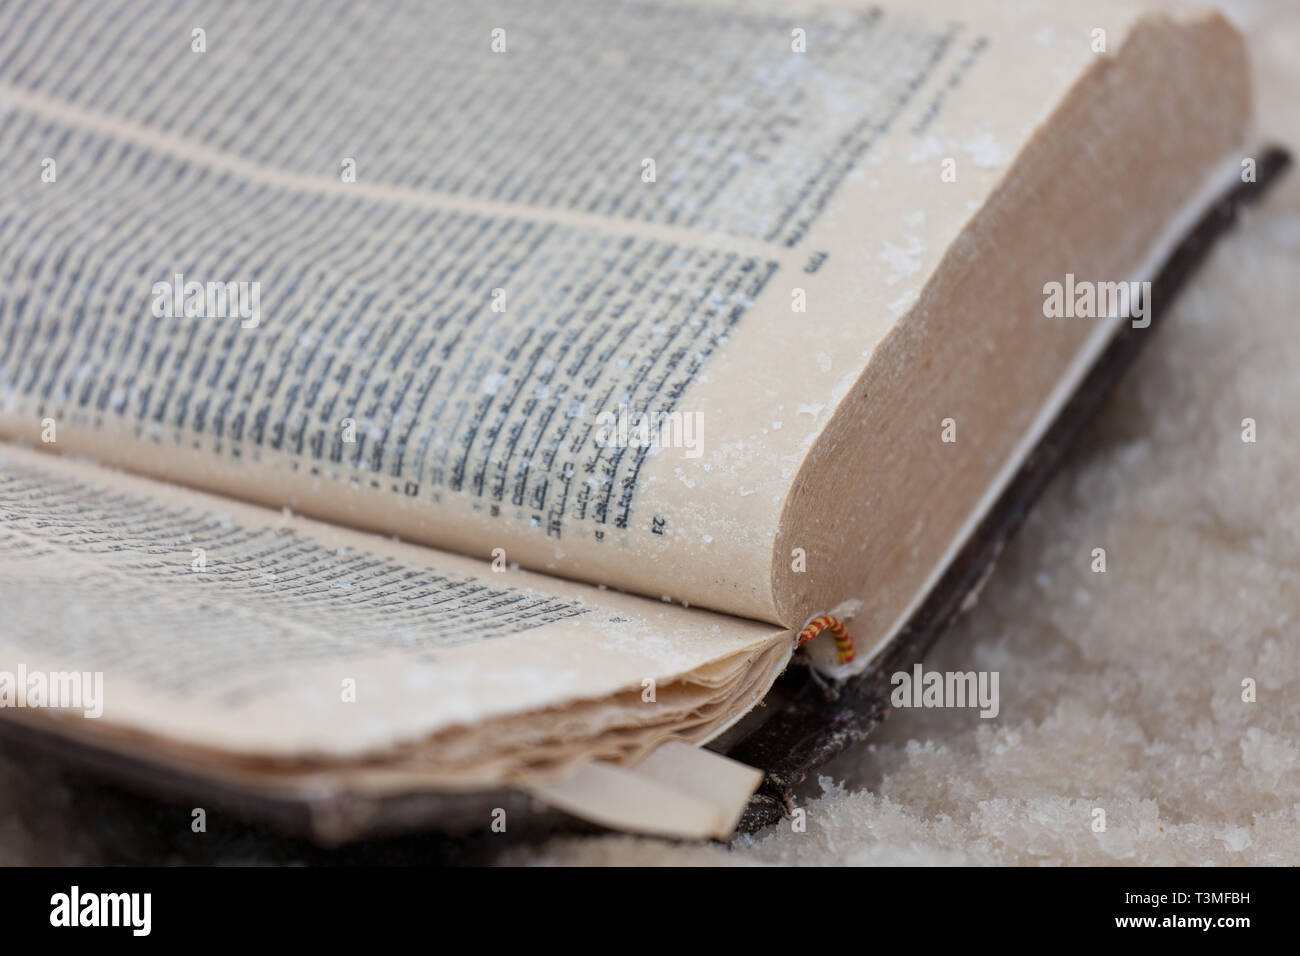 The forgotten old book covered with salt of the Dead sea. Israel. Selective focus. - Stock Image